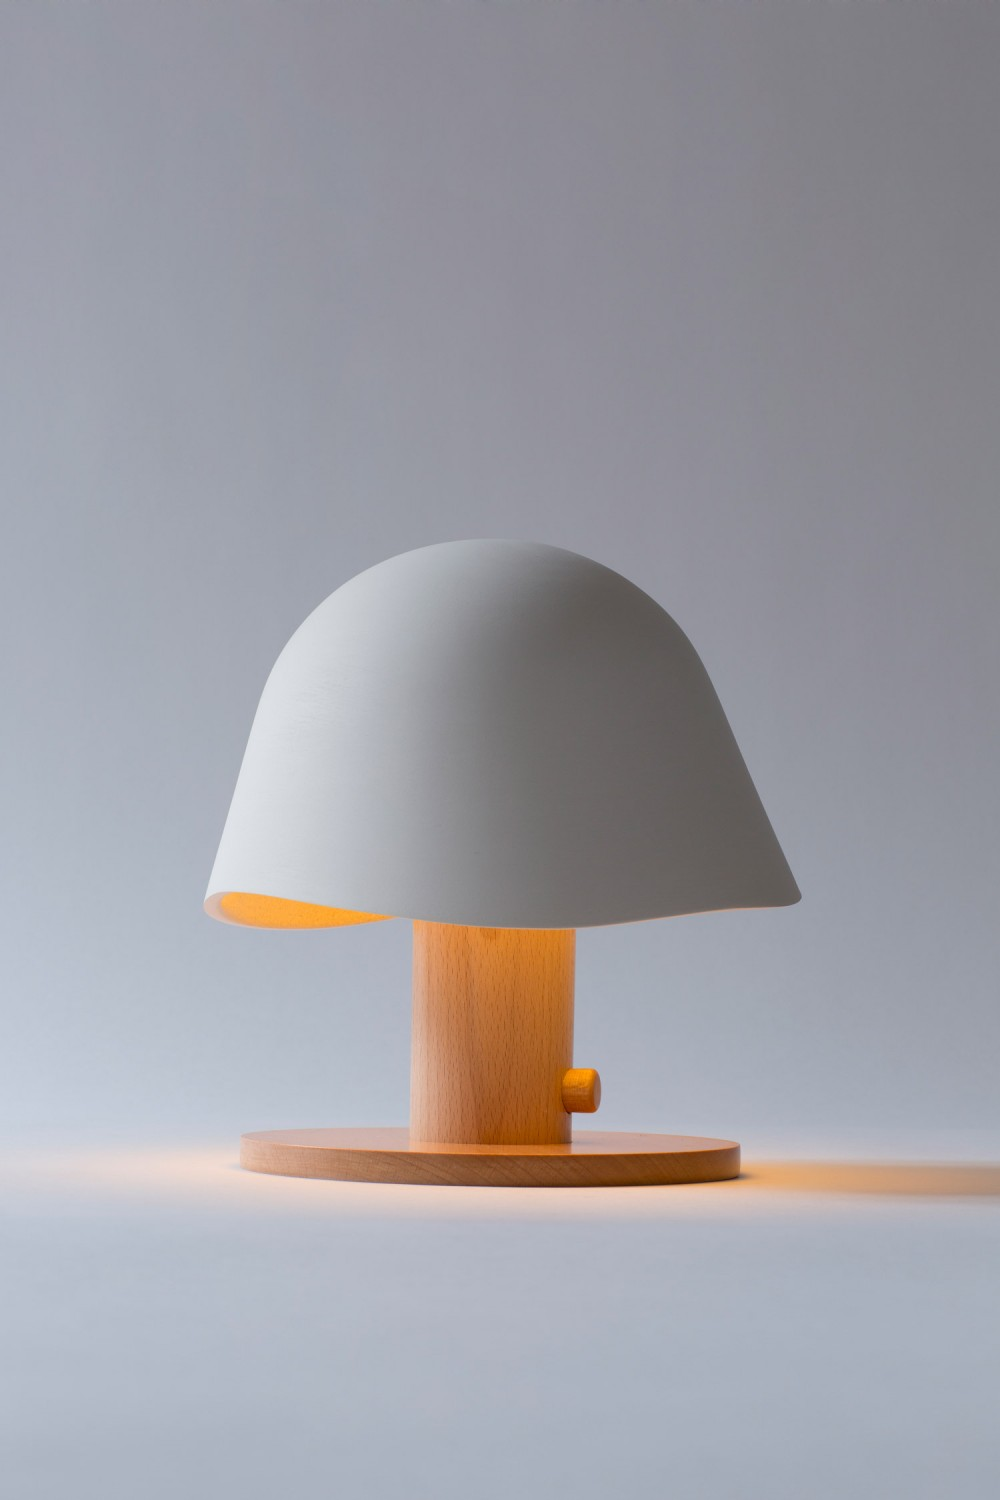 Garay Studio : Mush Lamp | Flodeau.com